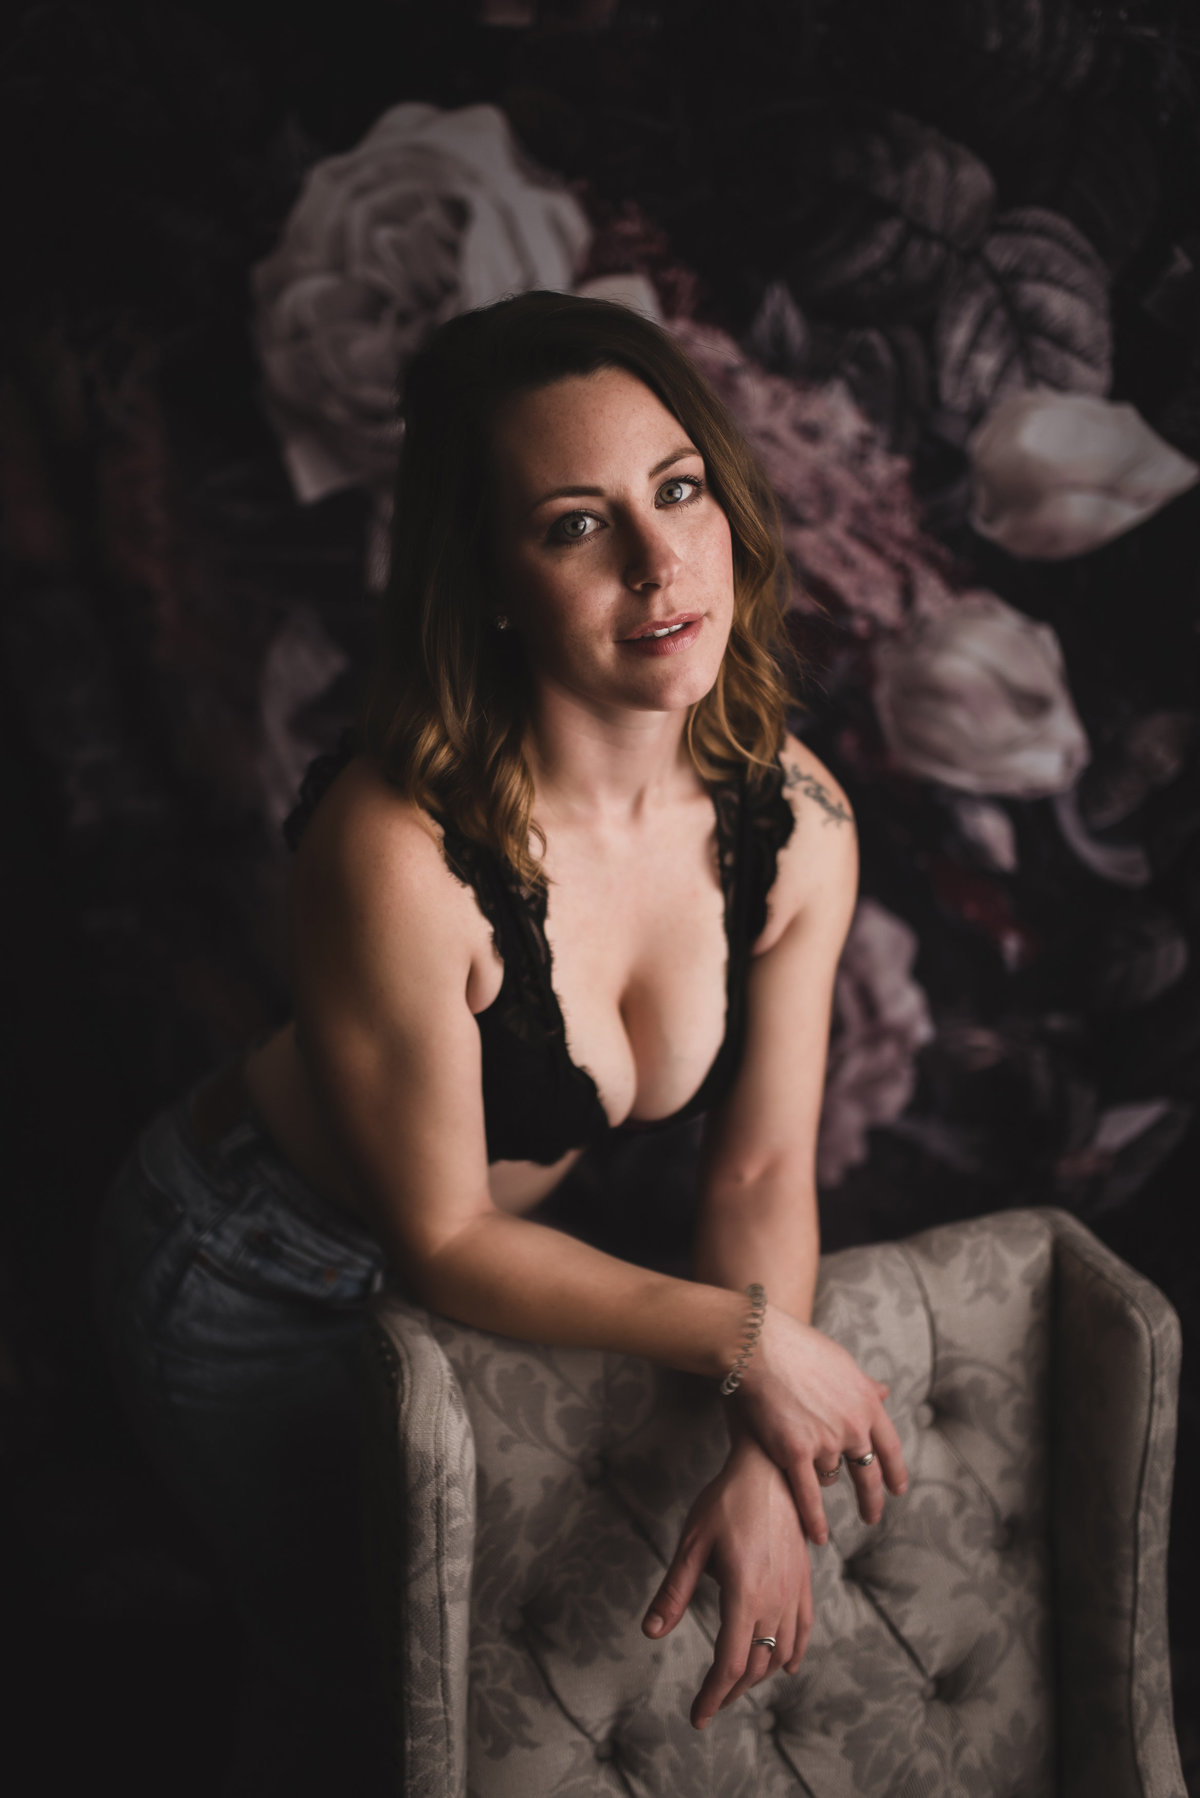 erika-gayle-photography-regina-boudoir-intimate-portrait-photographer-25